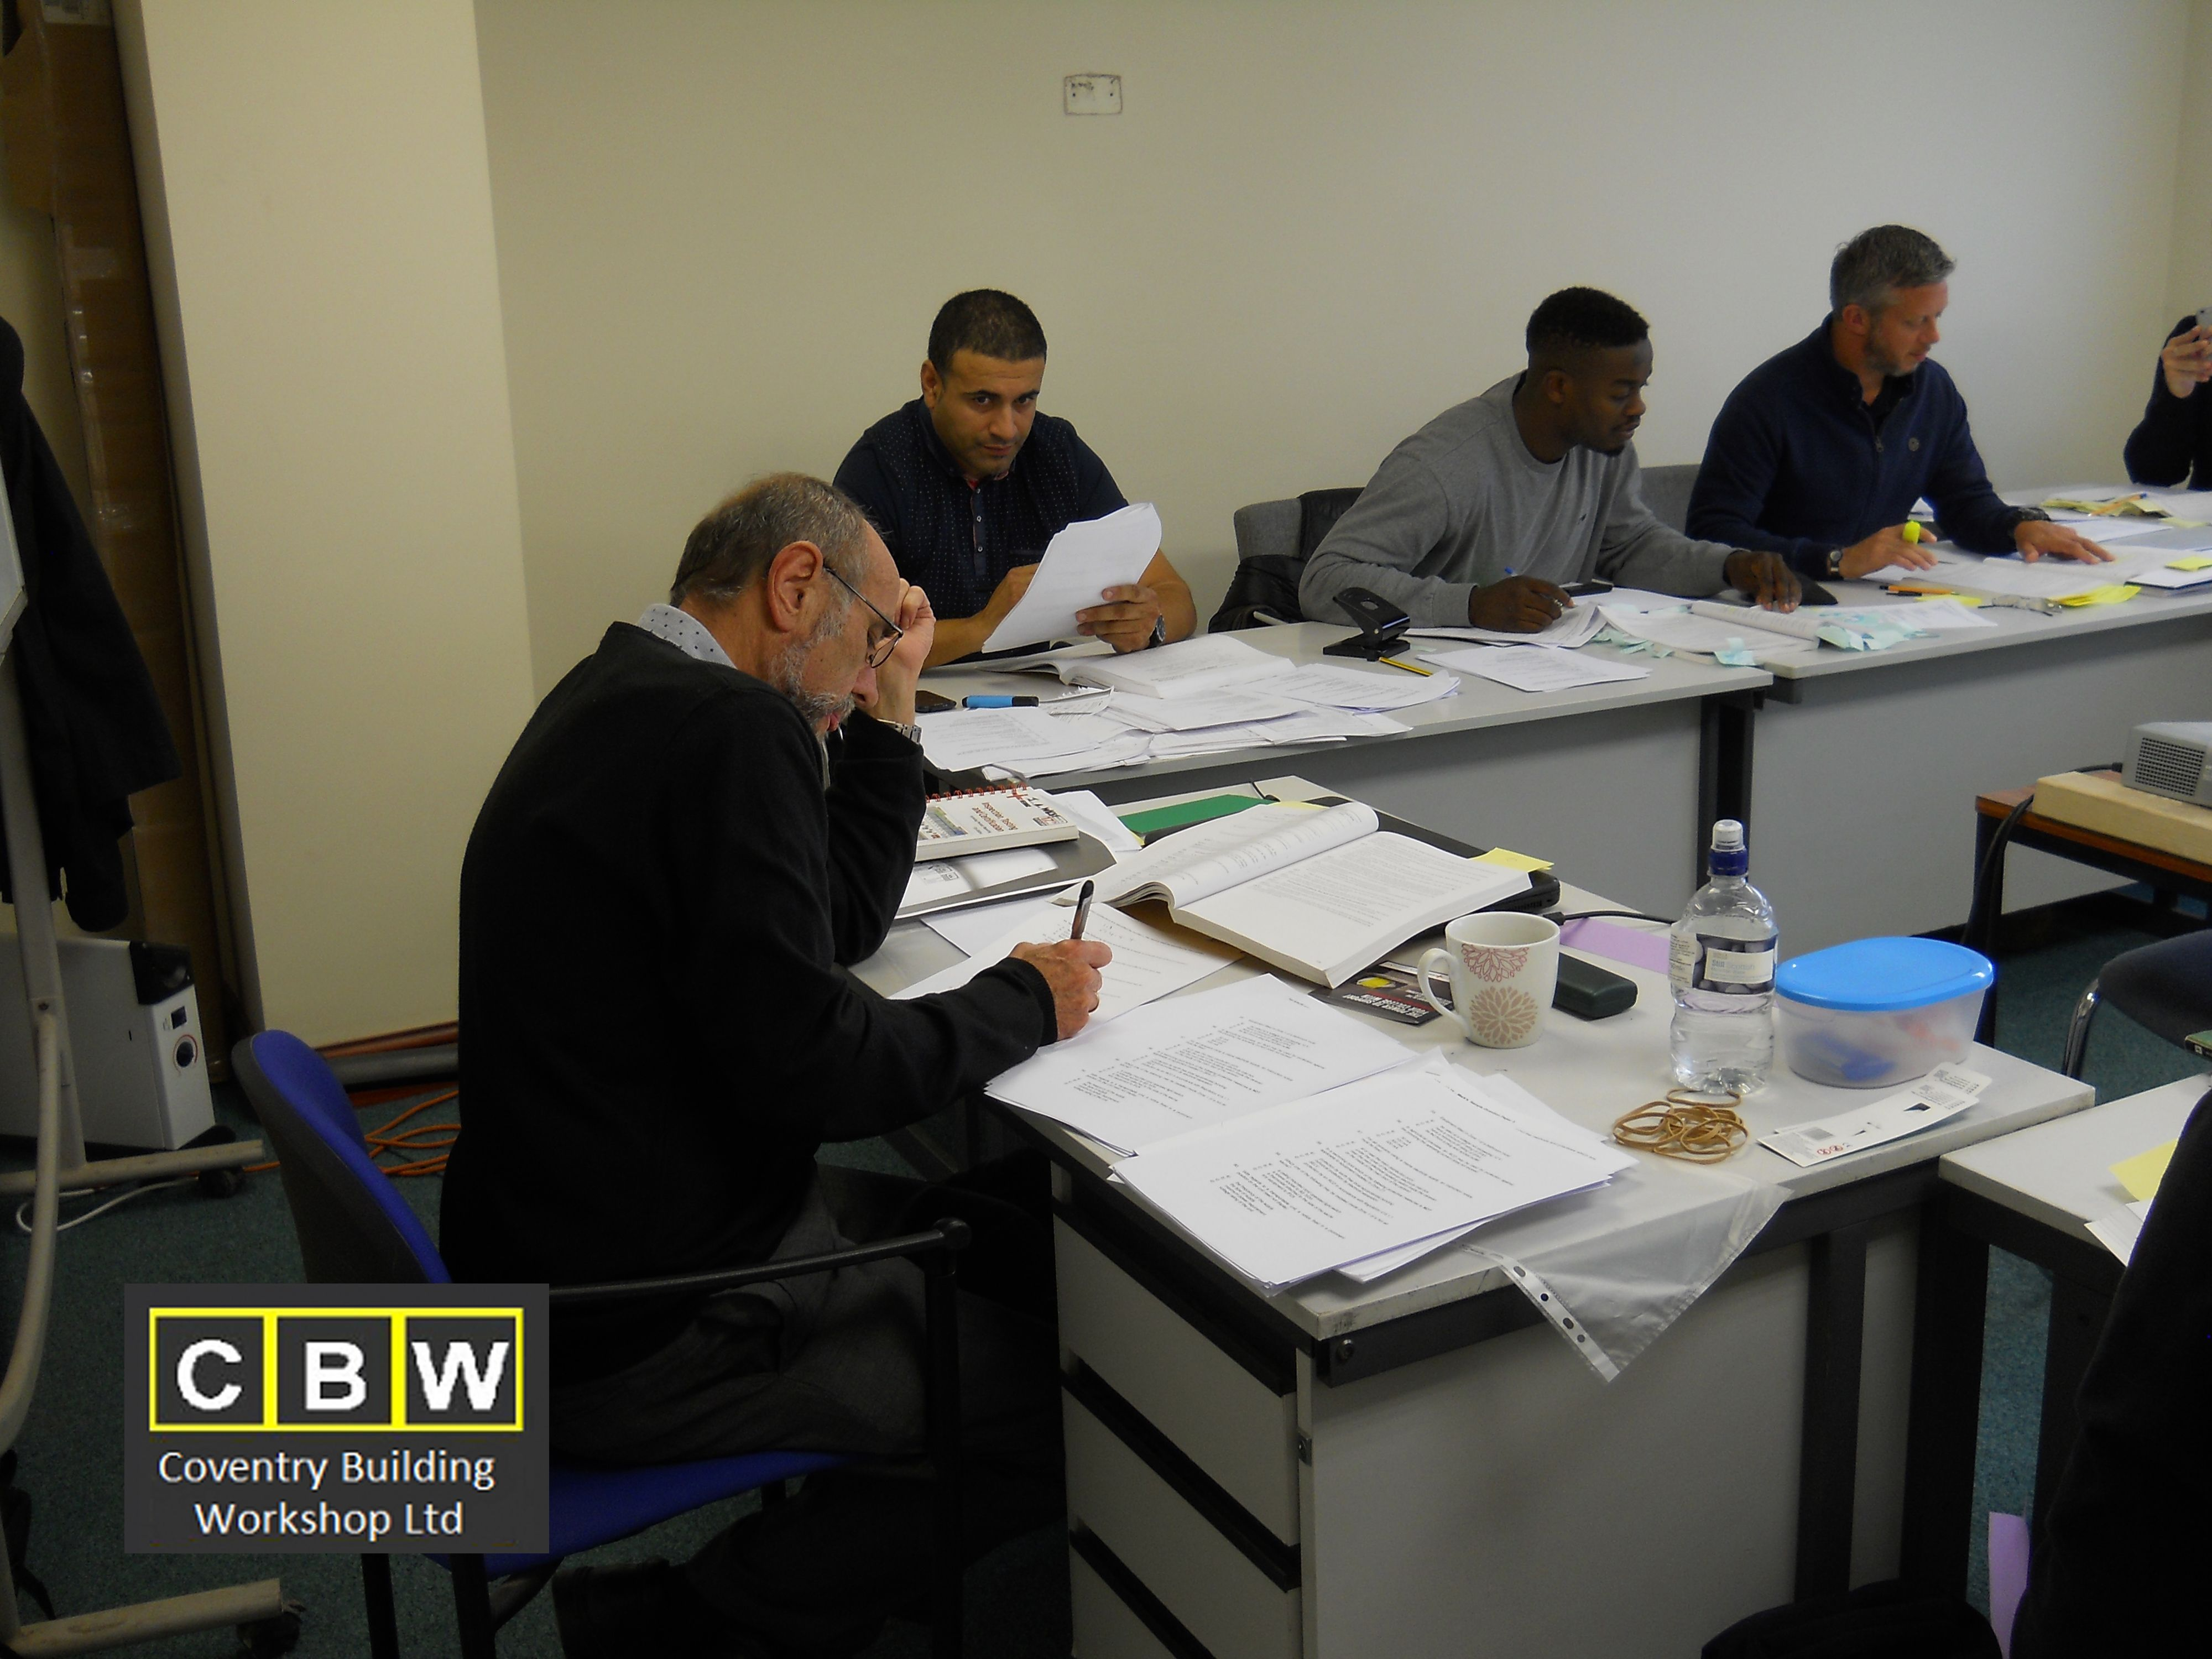 Electrical 17theditiontraining In Our 17thedition Uk Wiring Regulations Check 17theditioncourse Http Coventrybuildingworkshopcouk Courses City And Guilds 2382 17th Edition